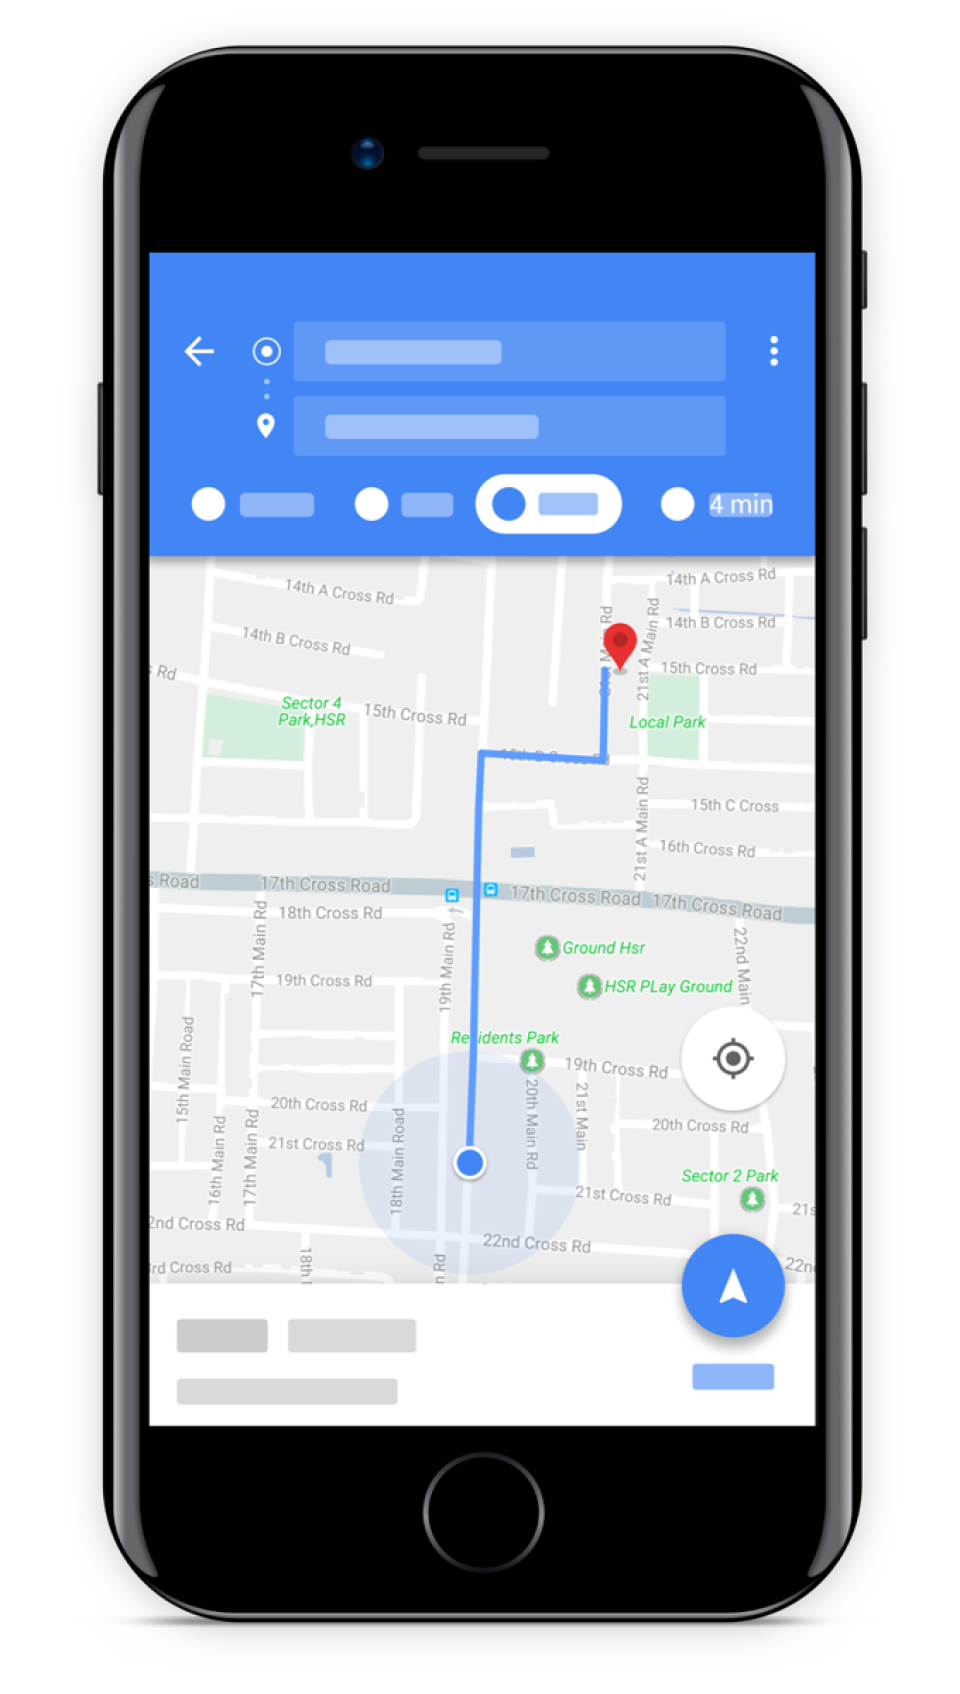 Guided navigation helps drivers to stay on-route and track ETAs